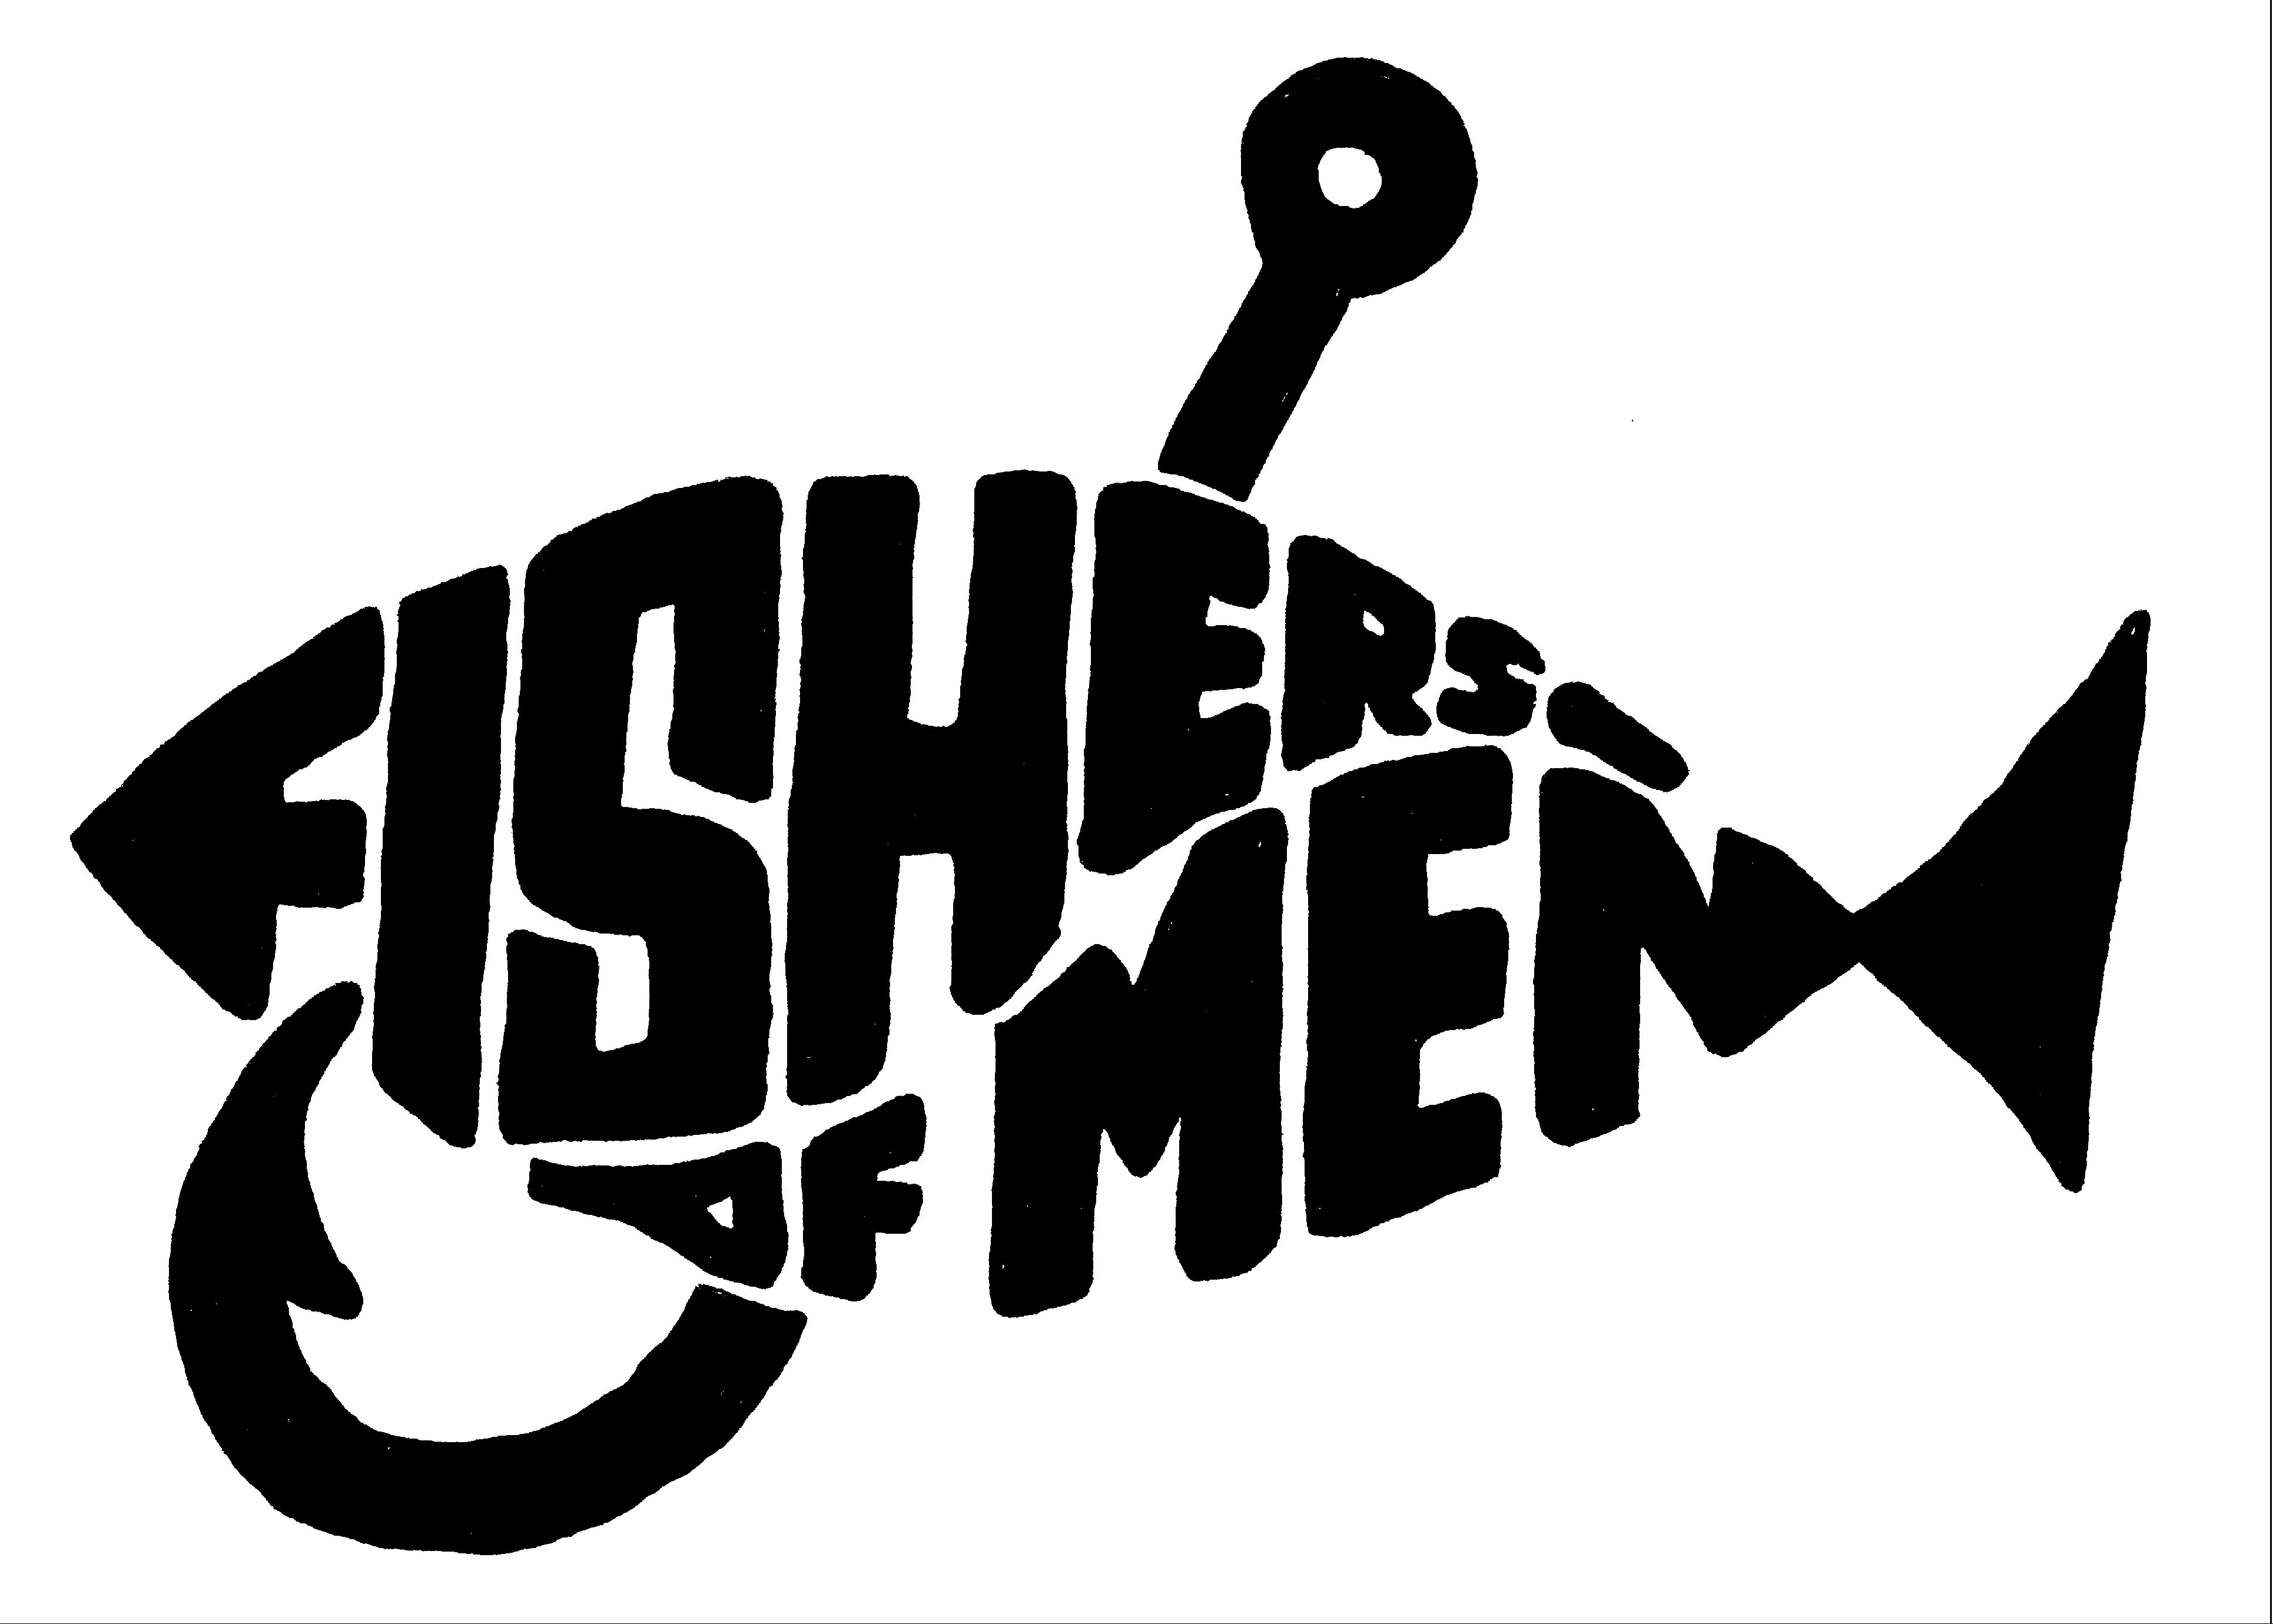 He is calling us to become fishers of men to help him create his new banners buycottarizona Image collections